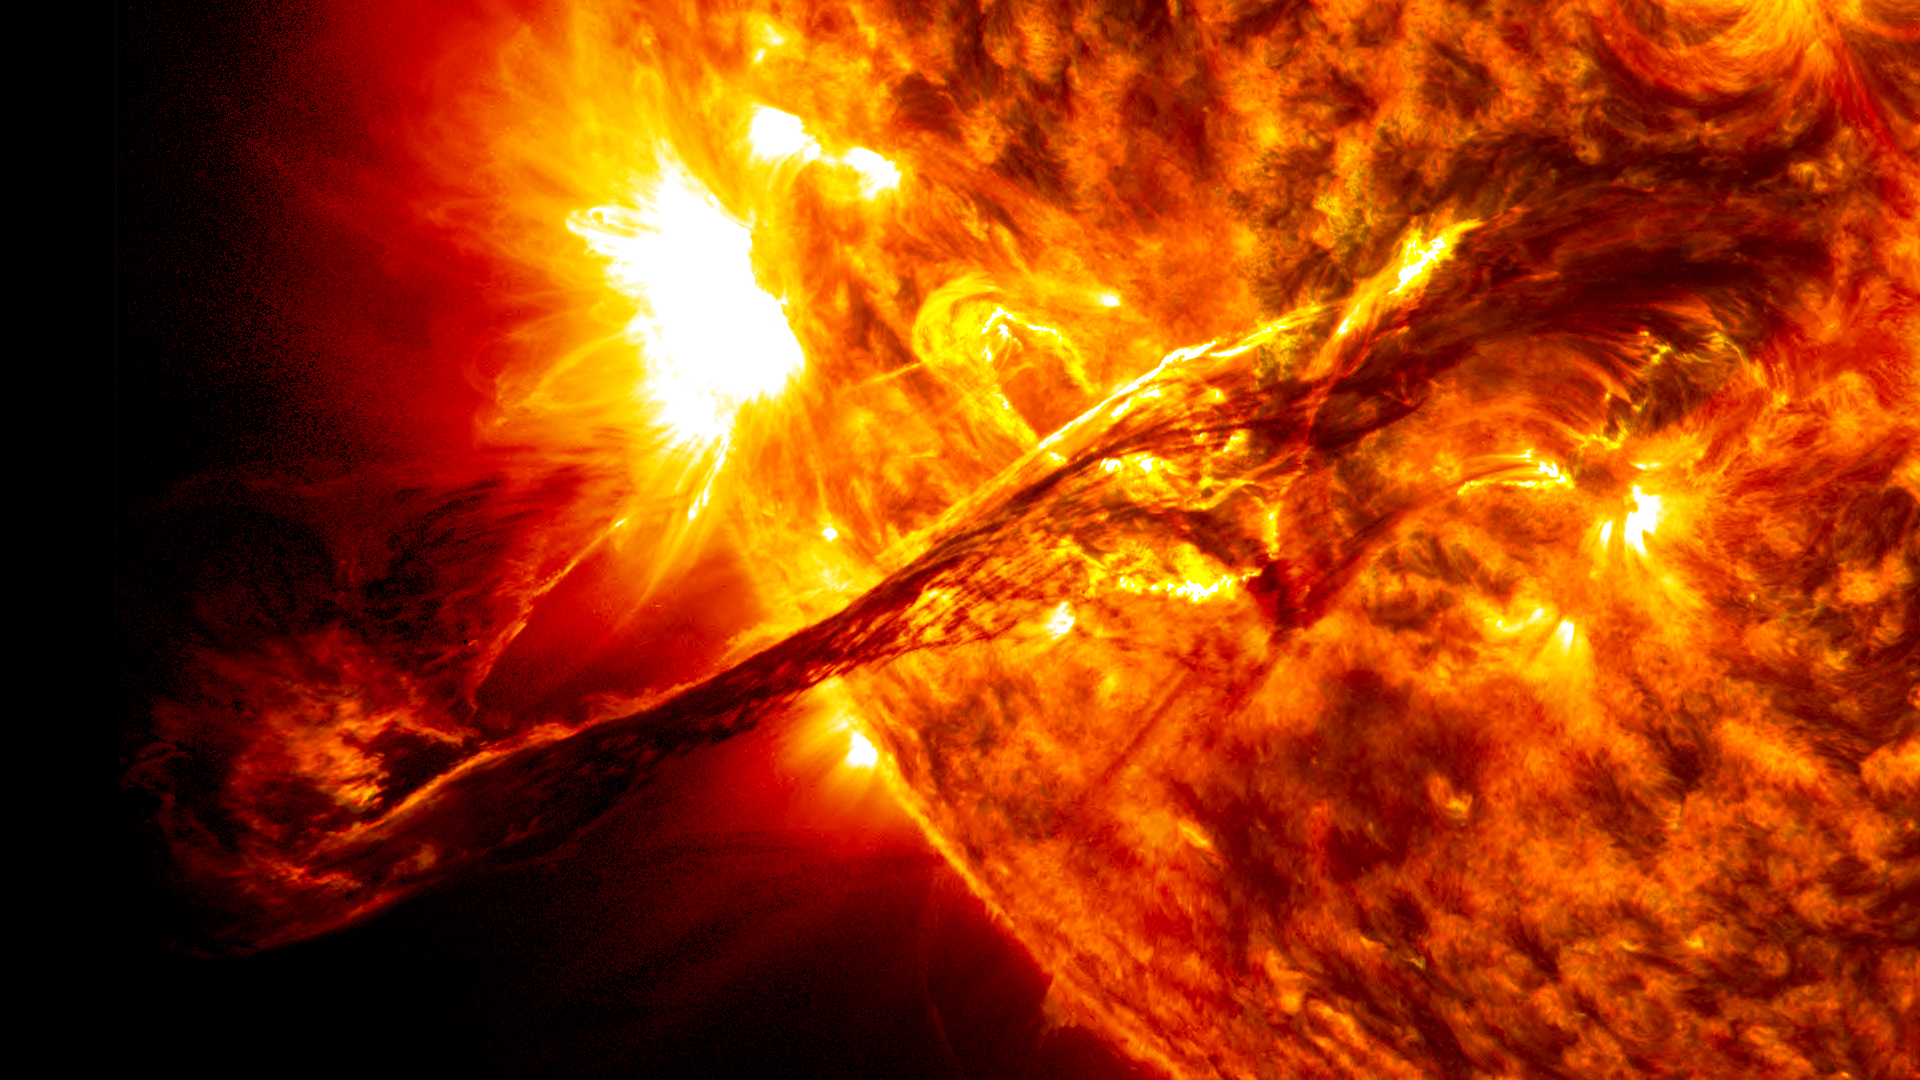 http://upload.wikimedia.org/wikipedia/commons/a/a3/Giant_prominence_on_the_sun_erupted.jpg